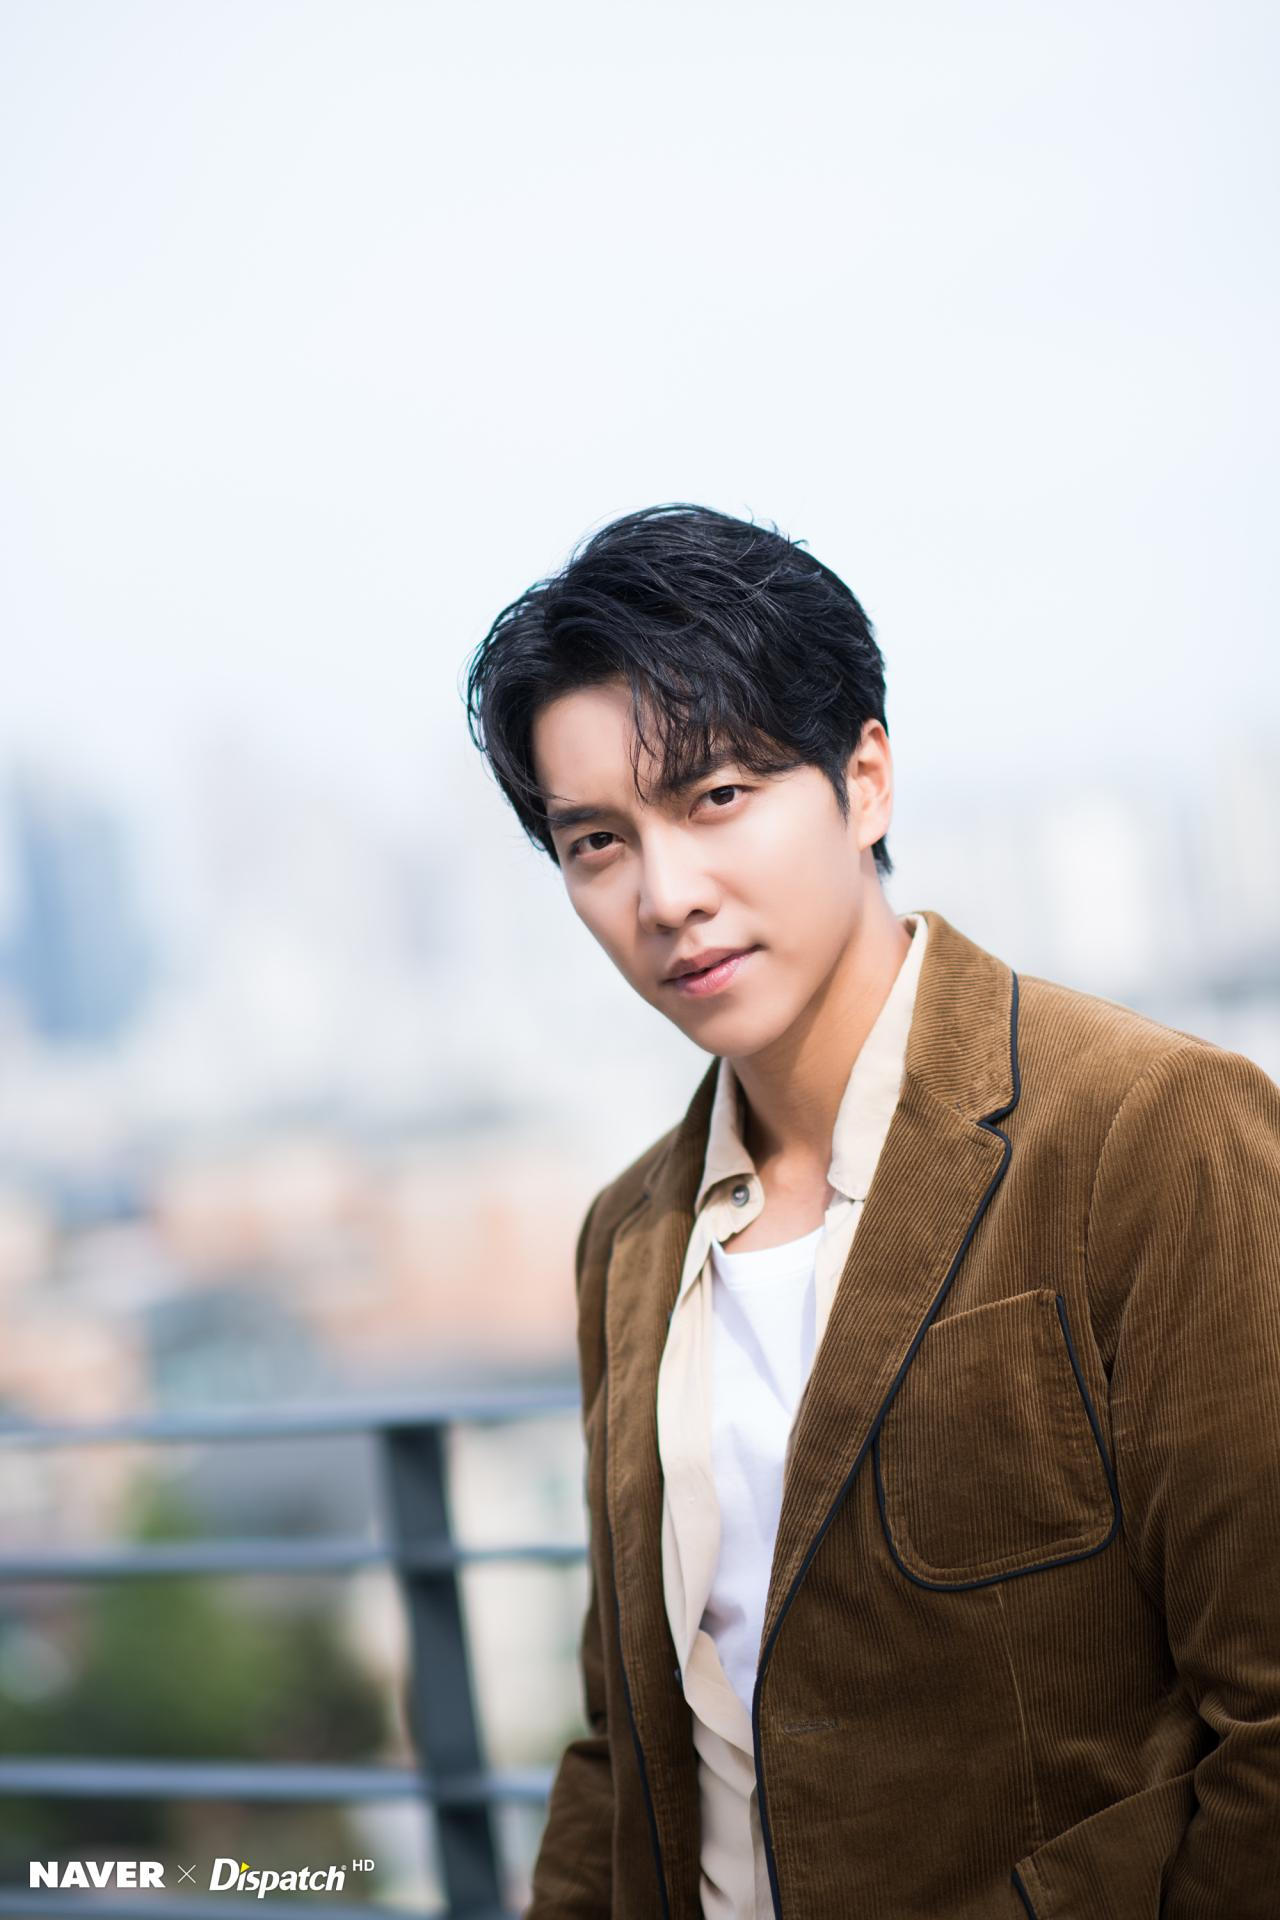 Lee seung gi After dating